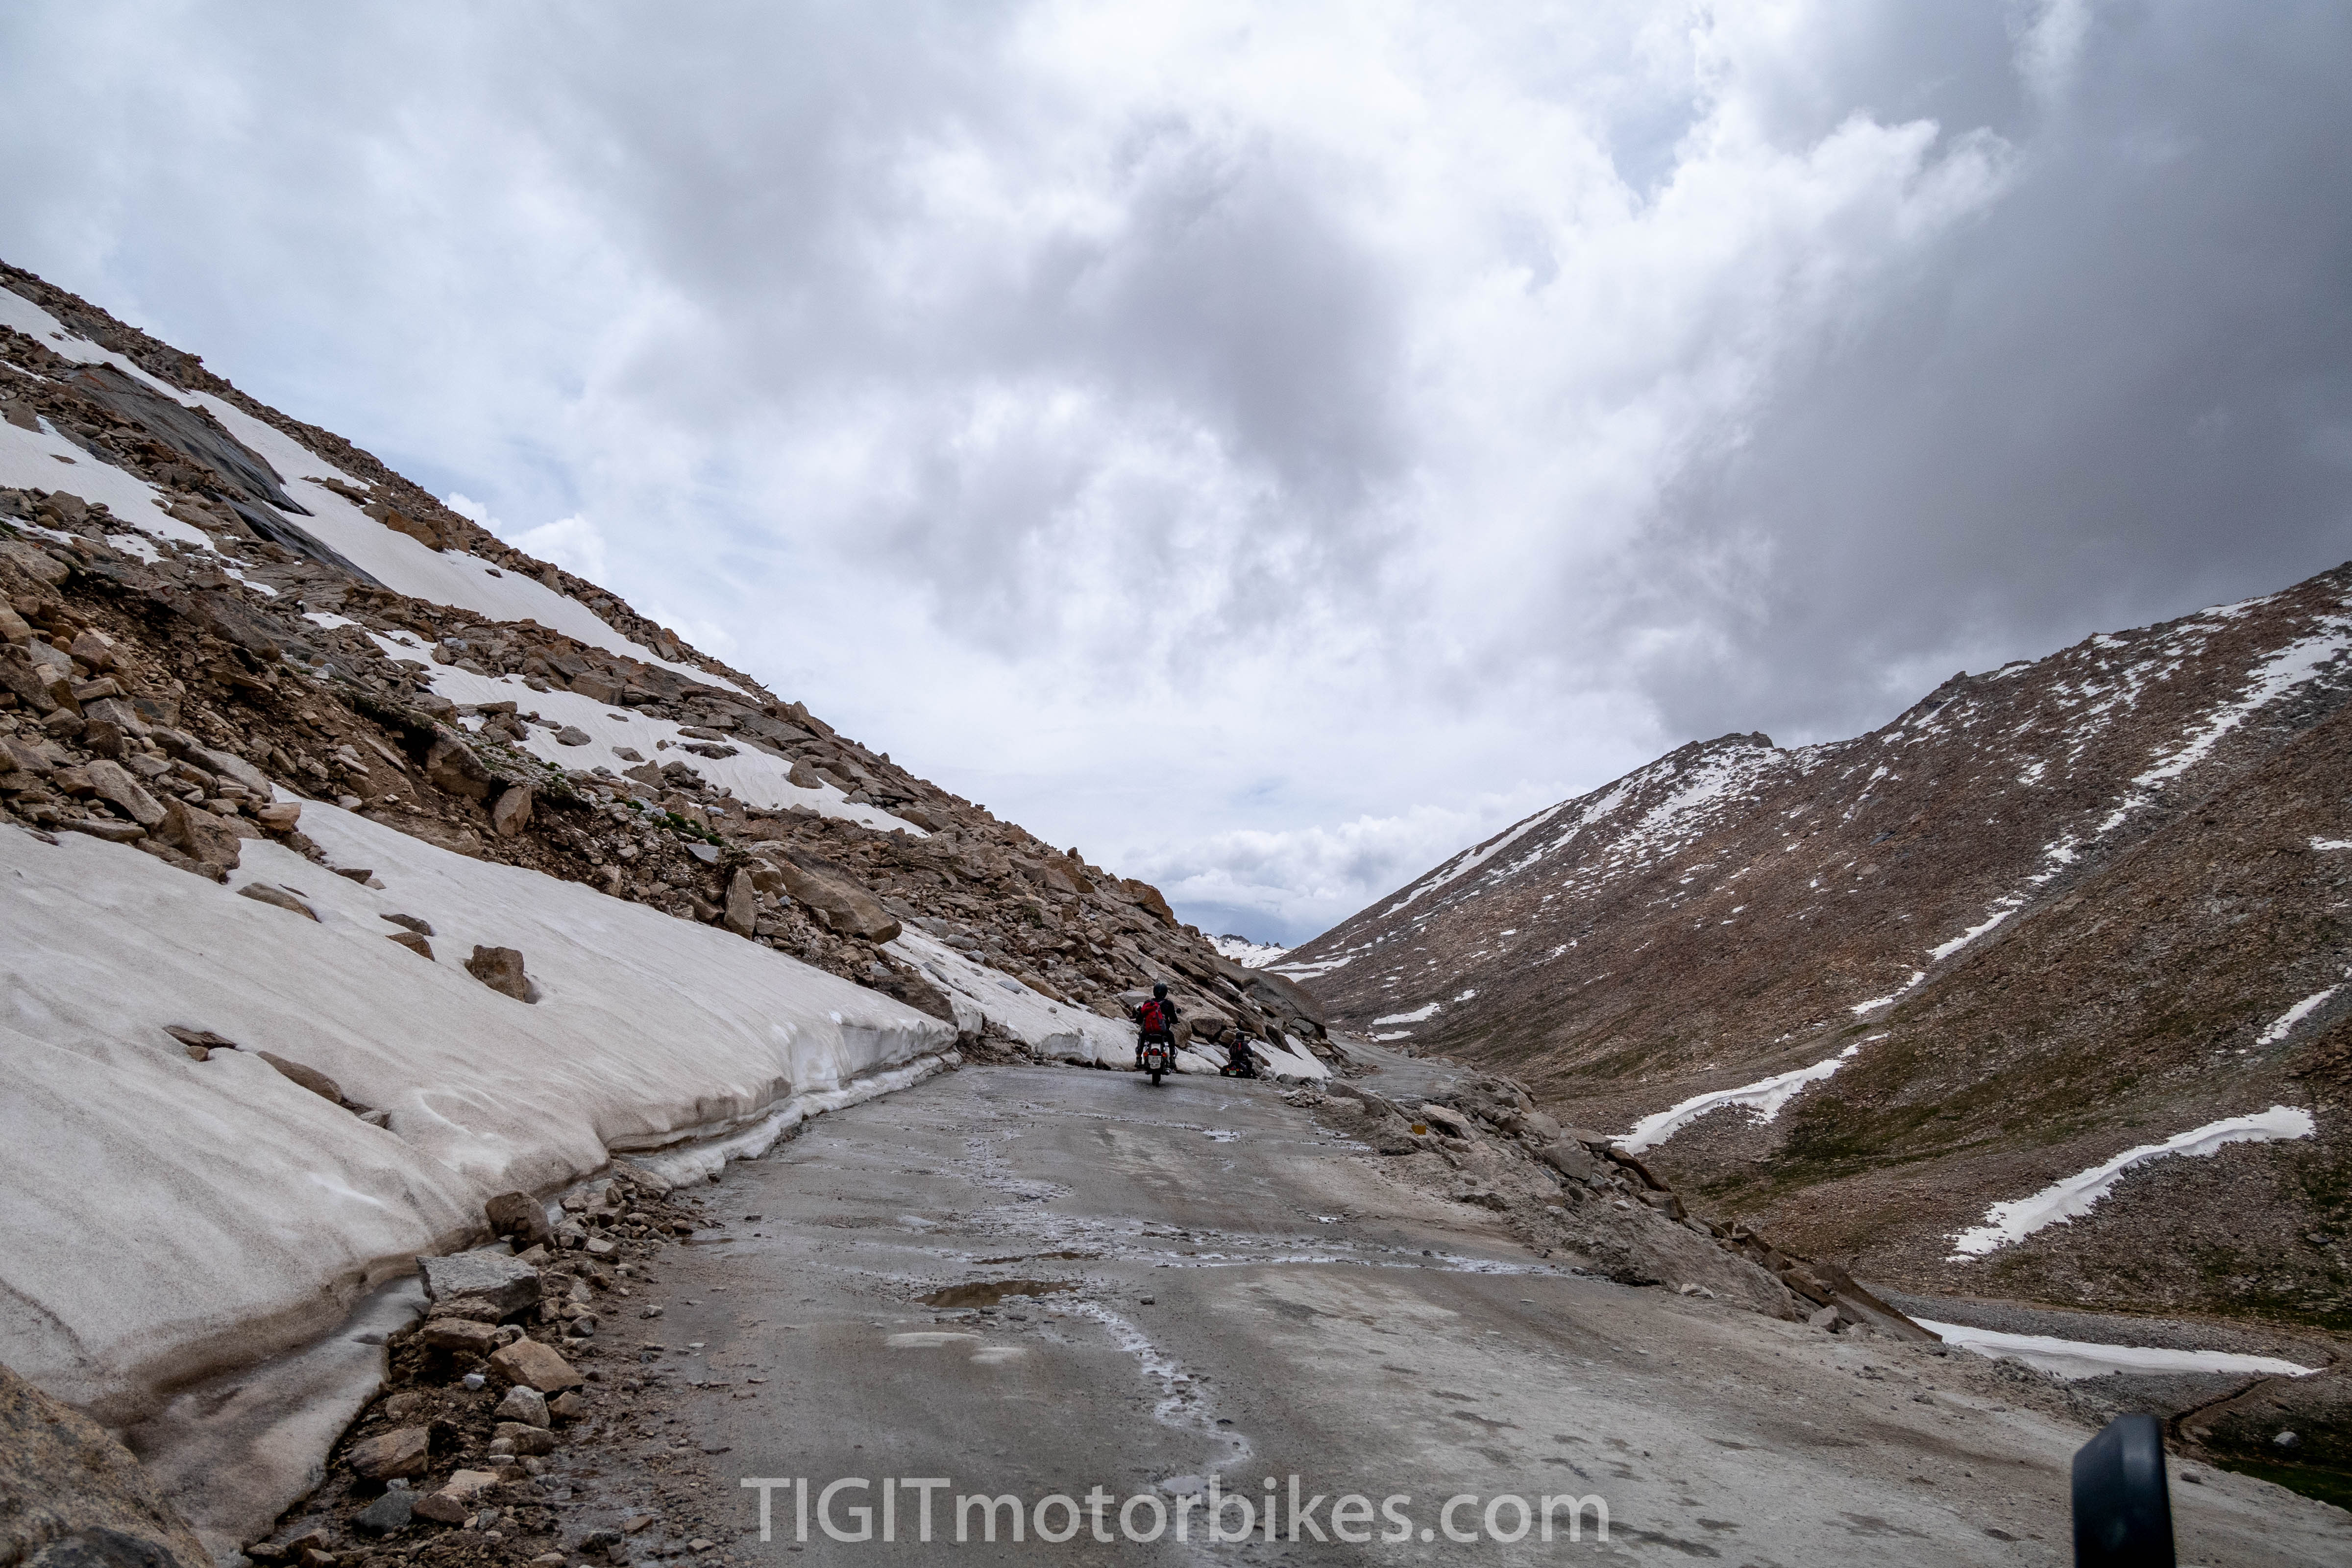 Crazy roads in the Himalayas